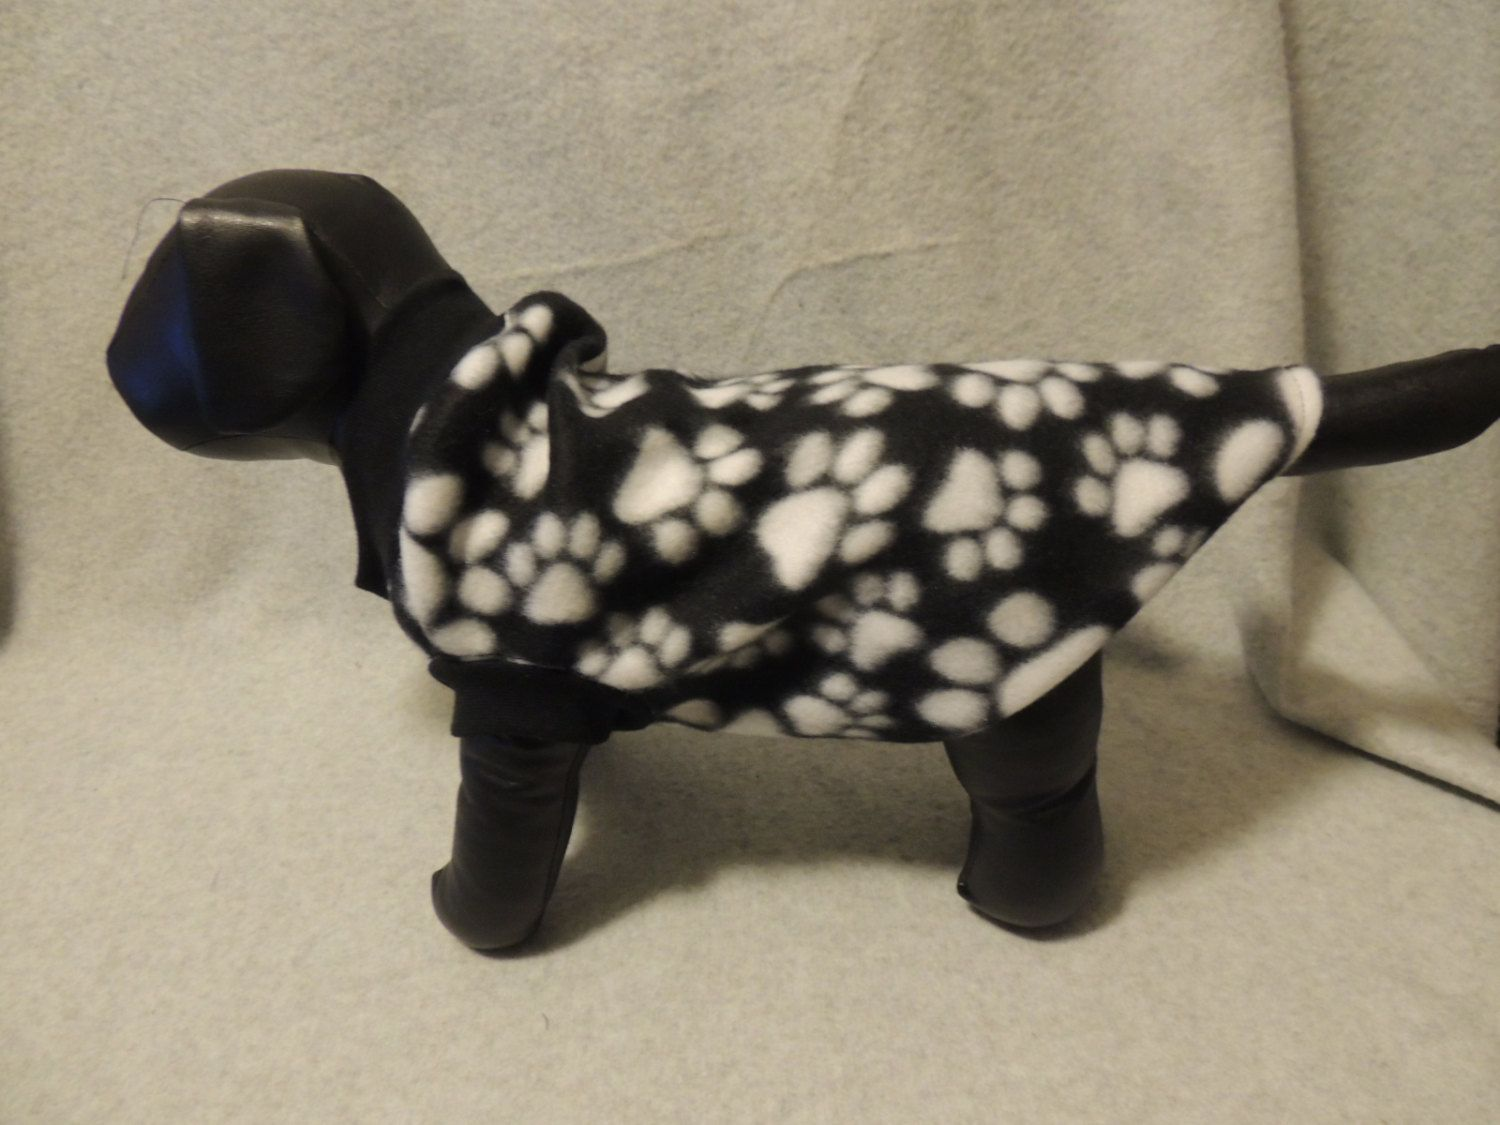 Small Fleece Dog T - Shirt  Black with White Paws by favorite4paws on Etsy